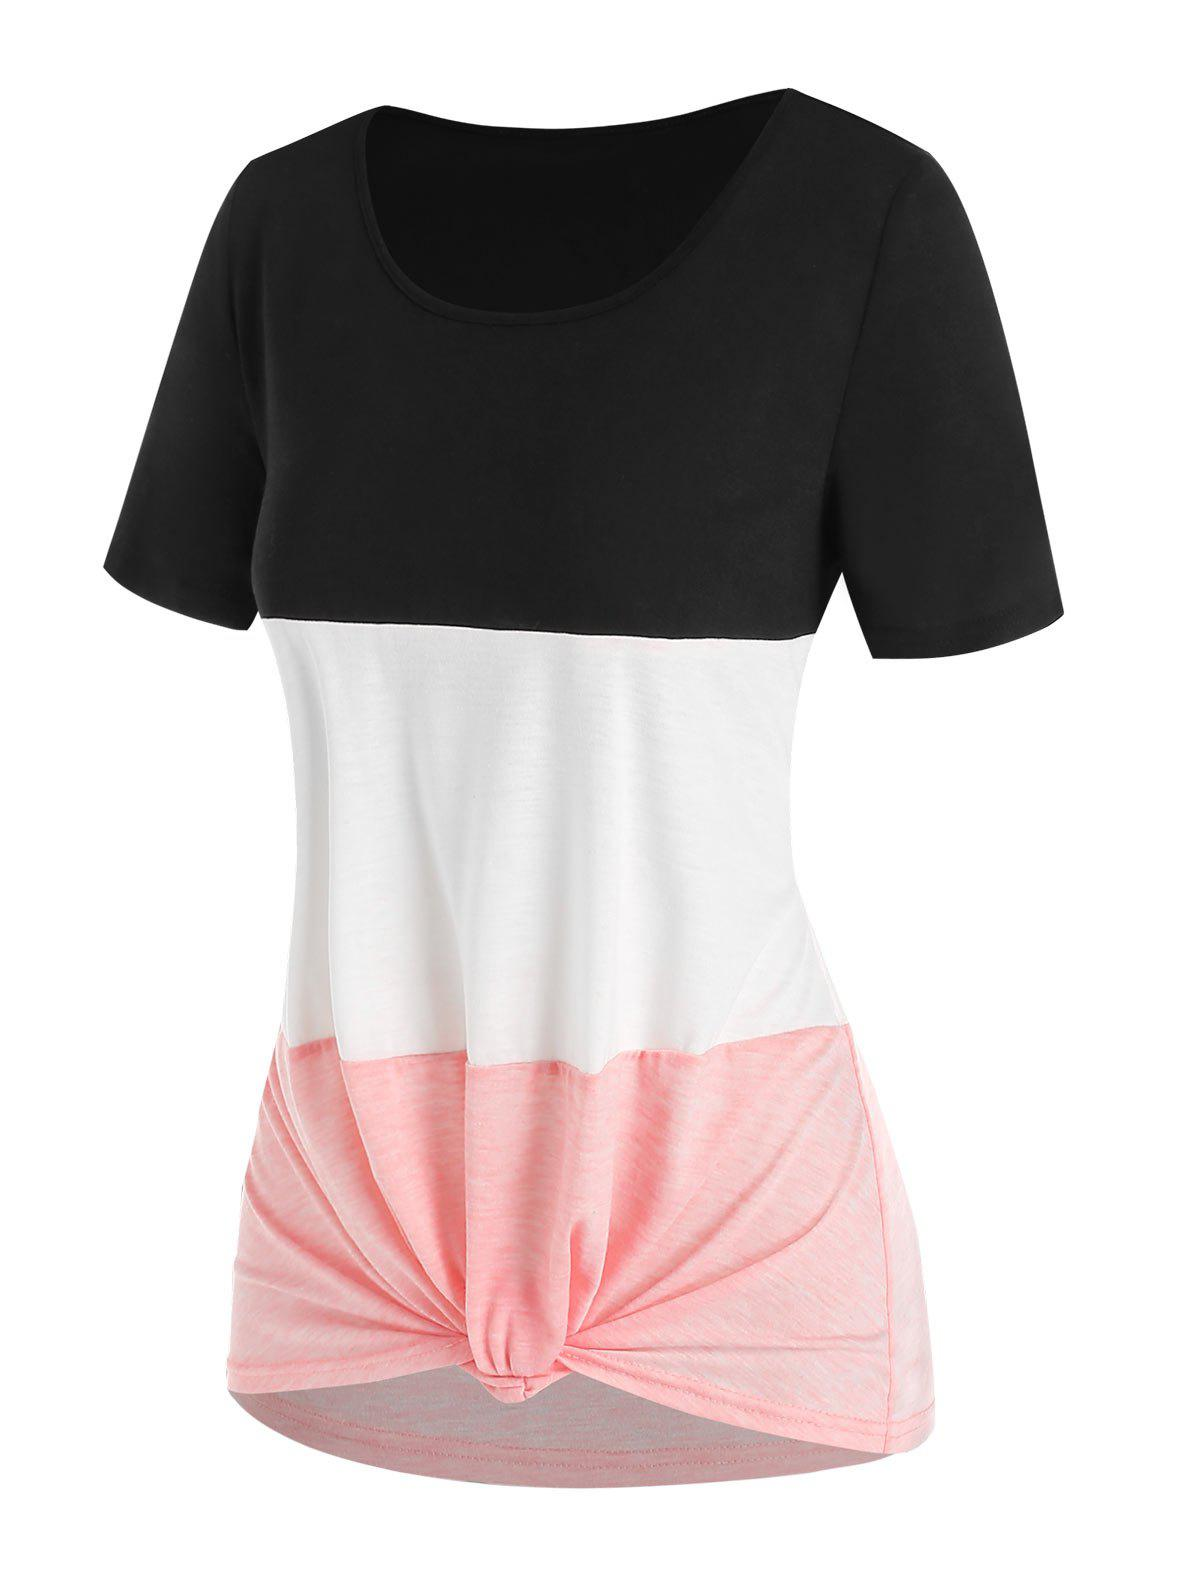 Knotted Colorblock Asymmetric T Shirt - LIGHT PINK XXXL